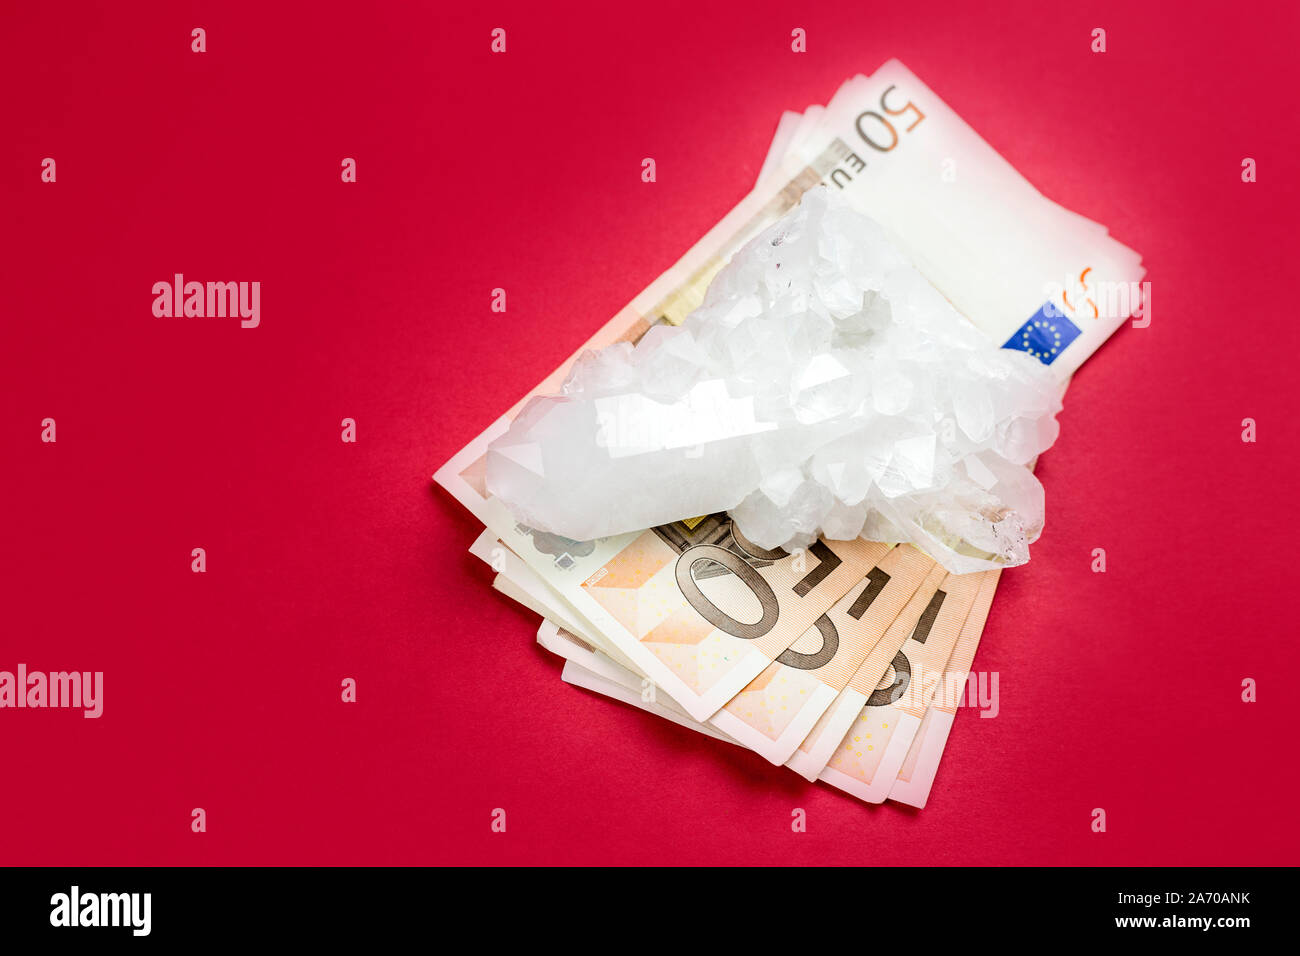 Lot of 50 euro bank notes under white pure crystal gemstone on red background. Conceptual image of business and finances in semi precious gemstone. Stock Photo